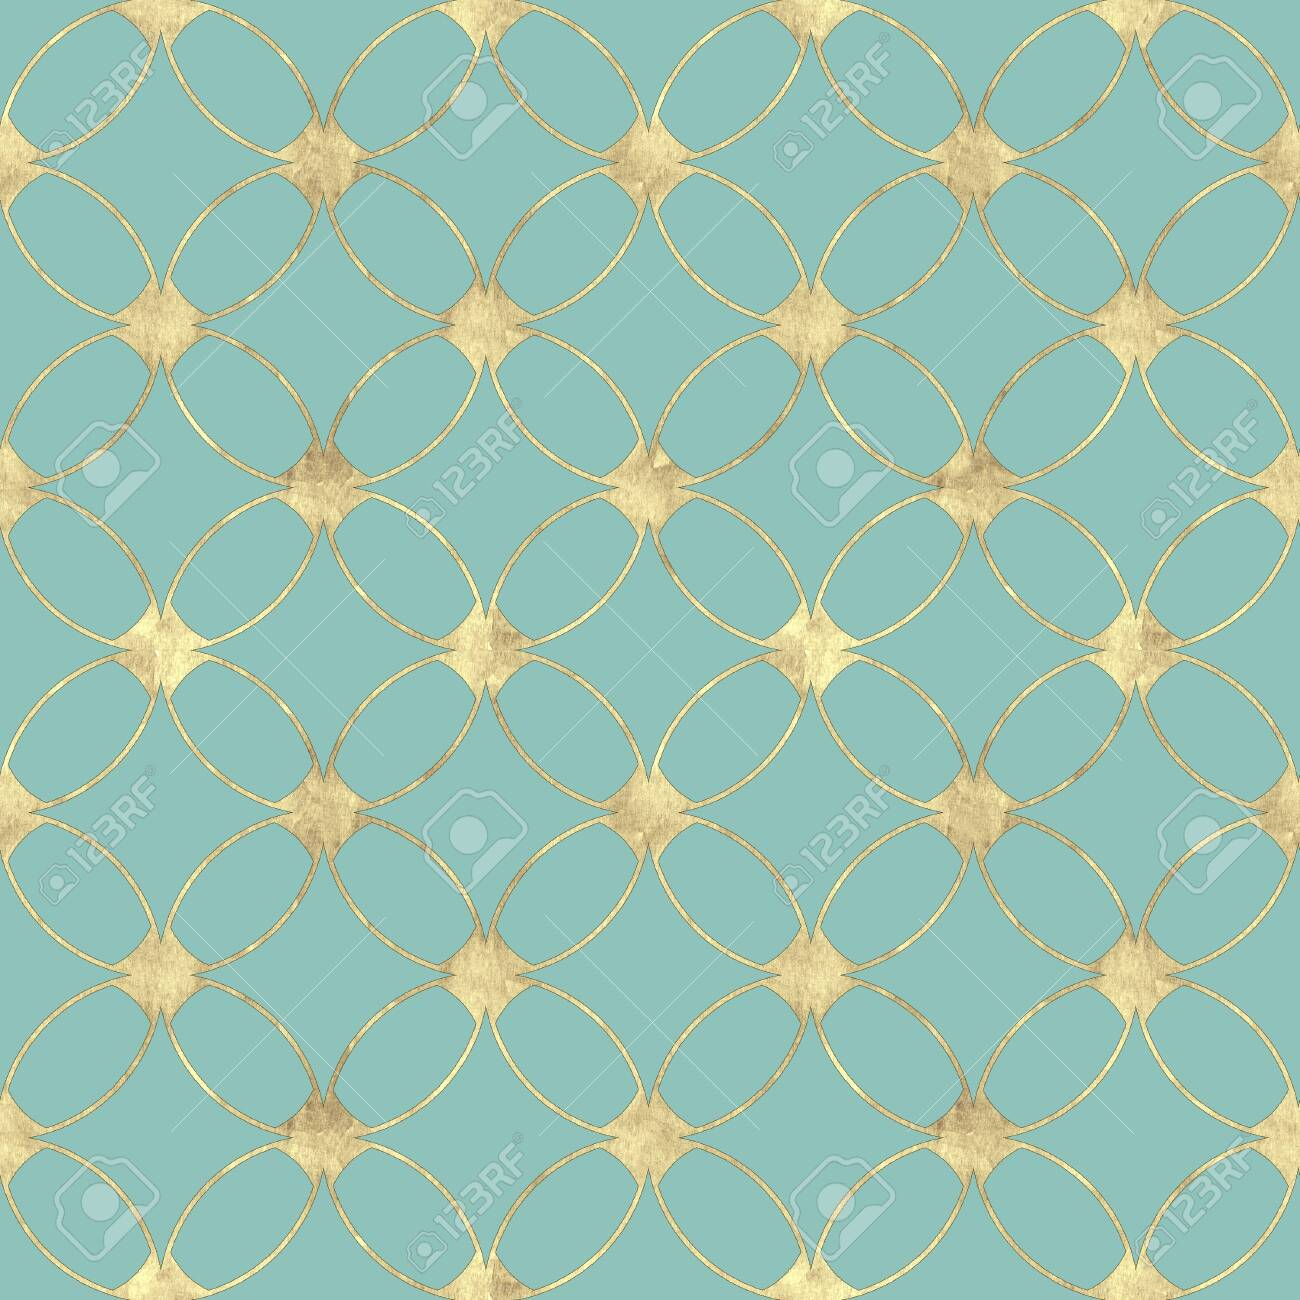 Seamless Pastel Mint Teal Turquoise Background With Abstract Stock Photo Picture And Royalty Free Image Image 115846315